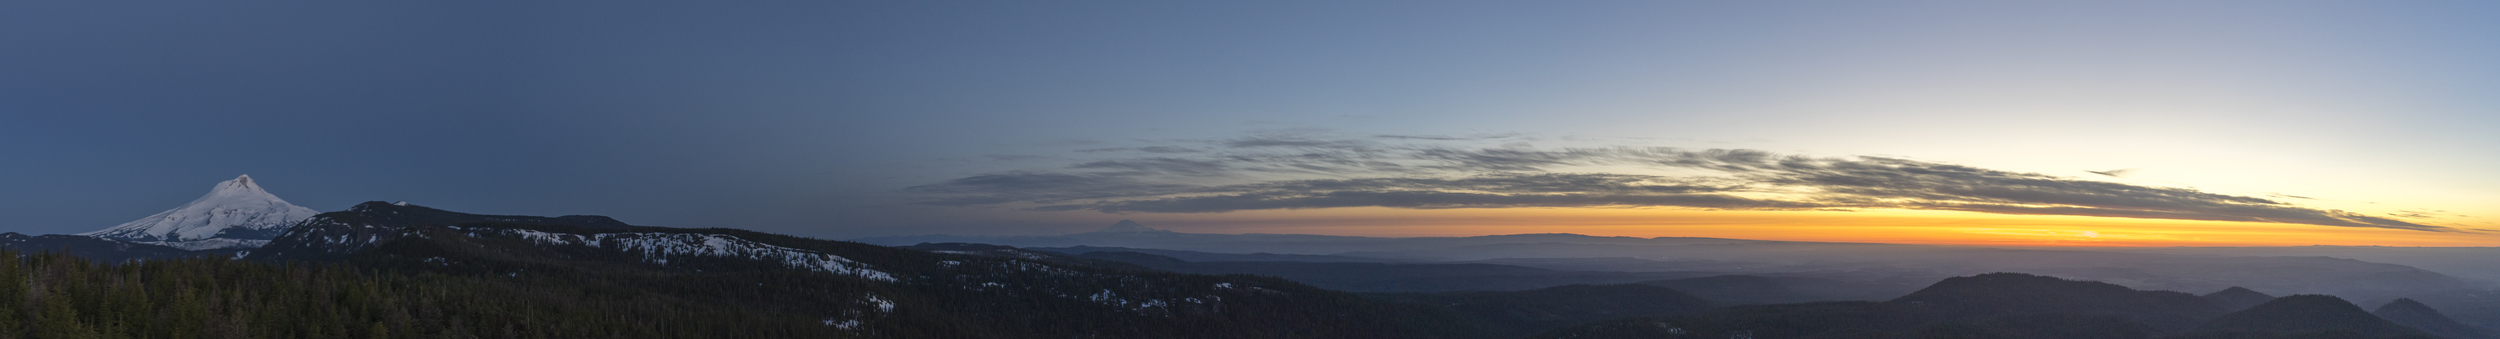 Sunrise from Flag Point Lookout tower near Mt Hood.  West to East.  Mt Adams and Rainier in the distance to the North.